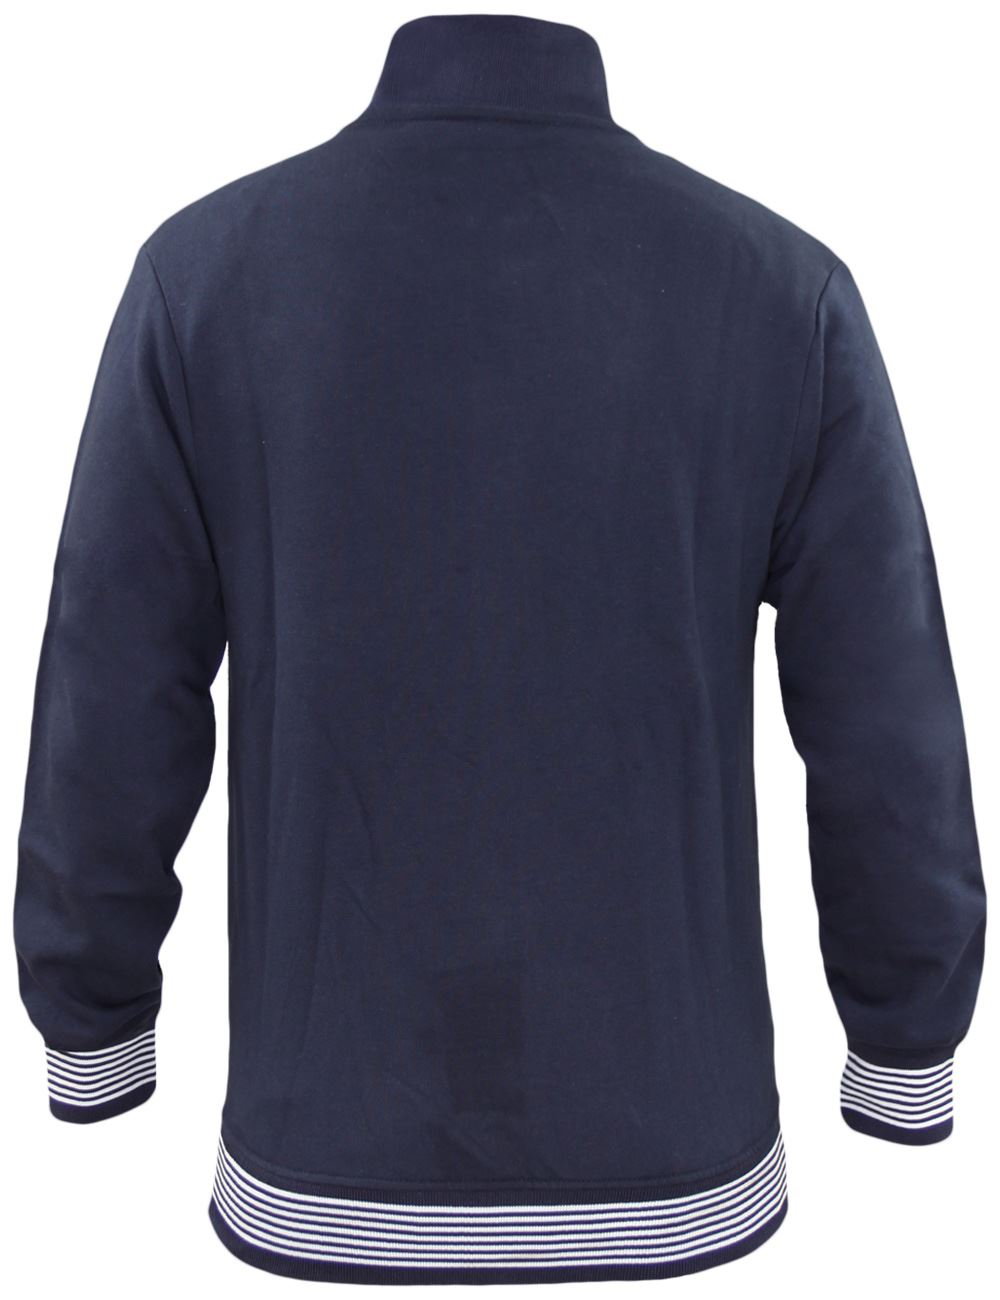 Mens-Jackets-Plain-Striped-Collar-Cuff-Zip-Sweatshirts-Ribbed-Sports-Sweater-Top thumbnail 5